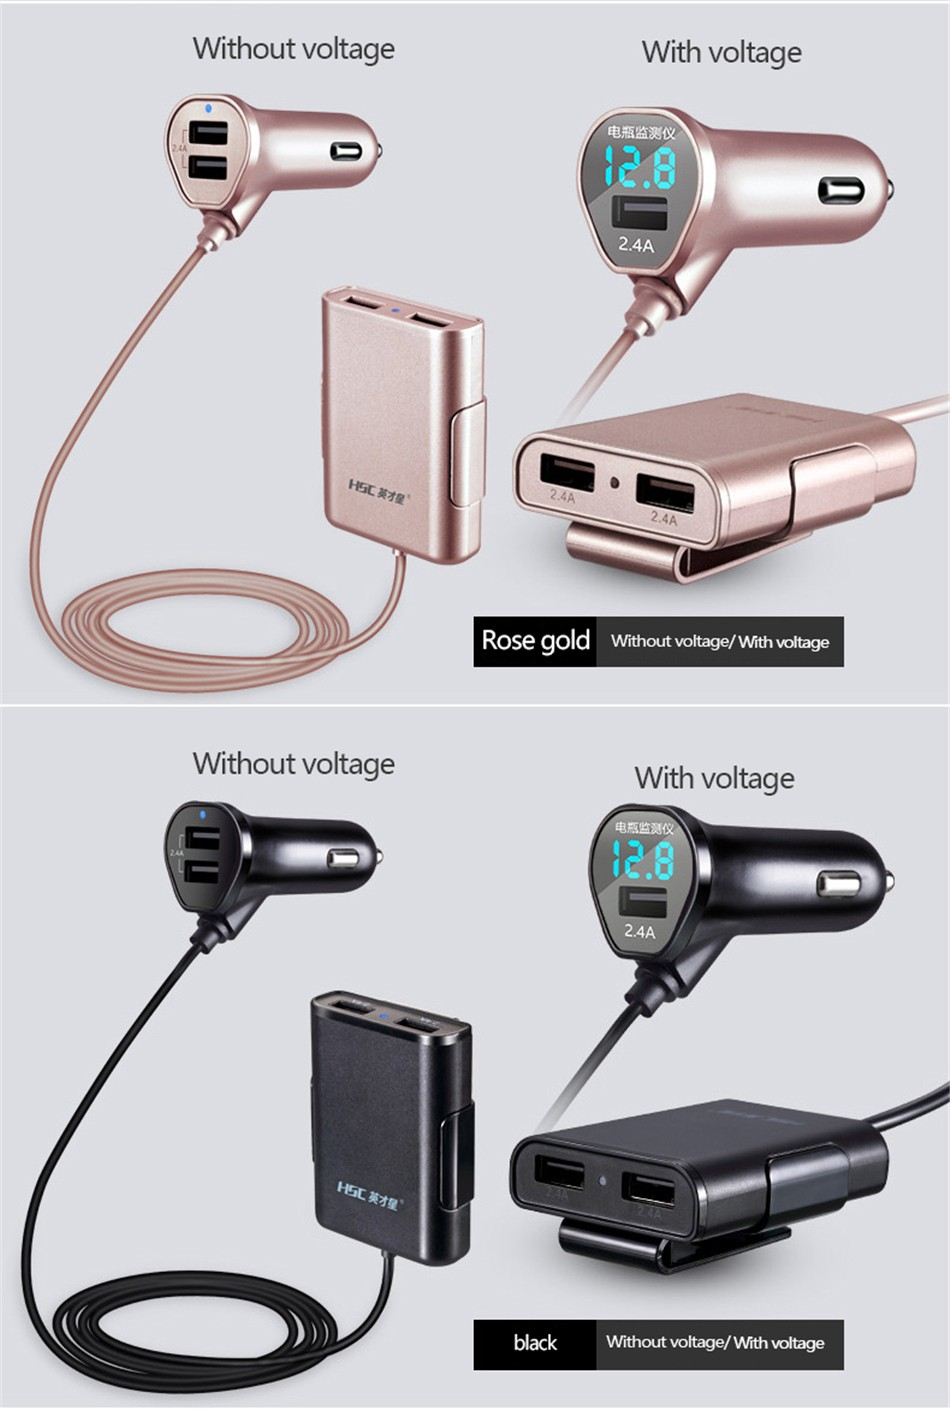 Brand HSC-600 car-charger 4 USB 4.8A Lengthen 1.8 meters , car charger for ipad iphone 5 5s 6 6s and samsung phone (17)